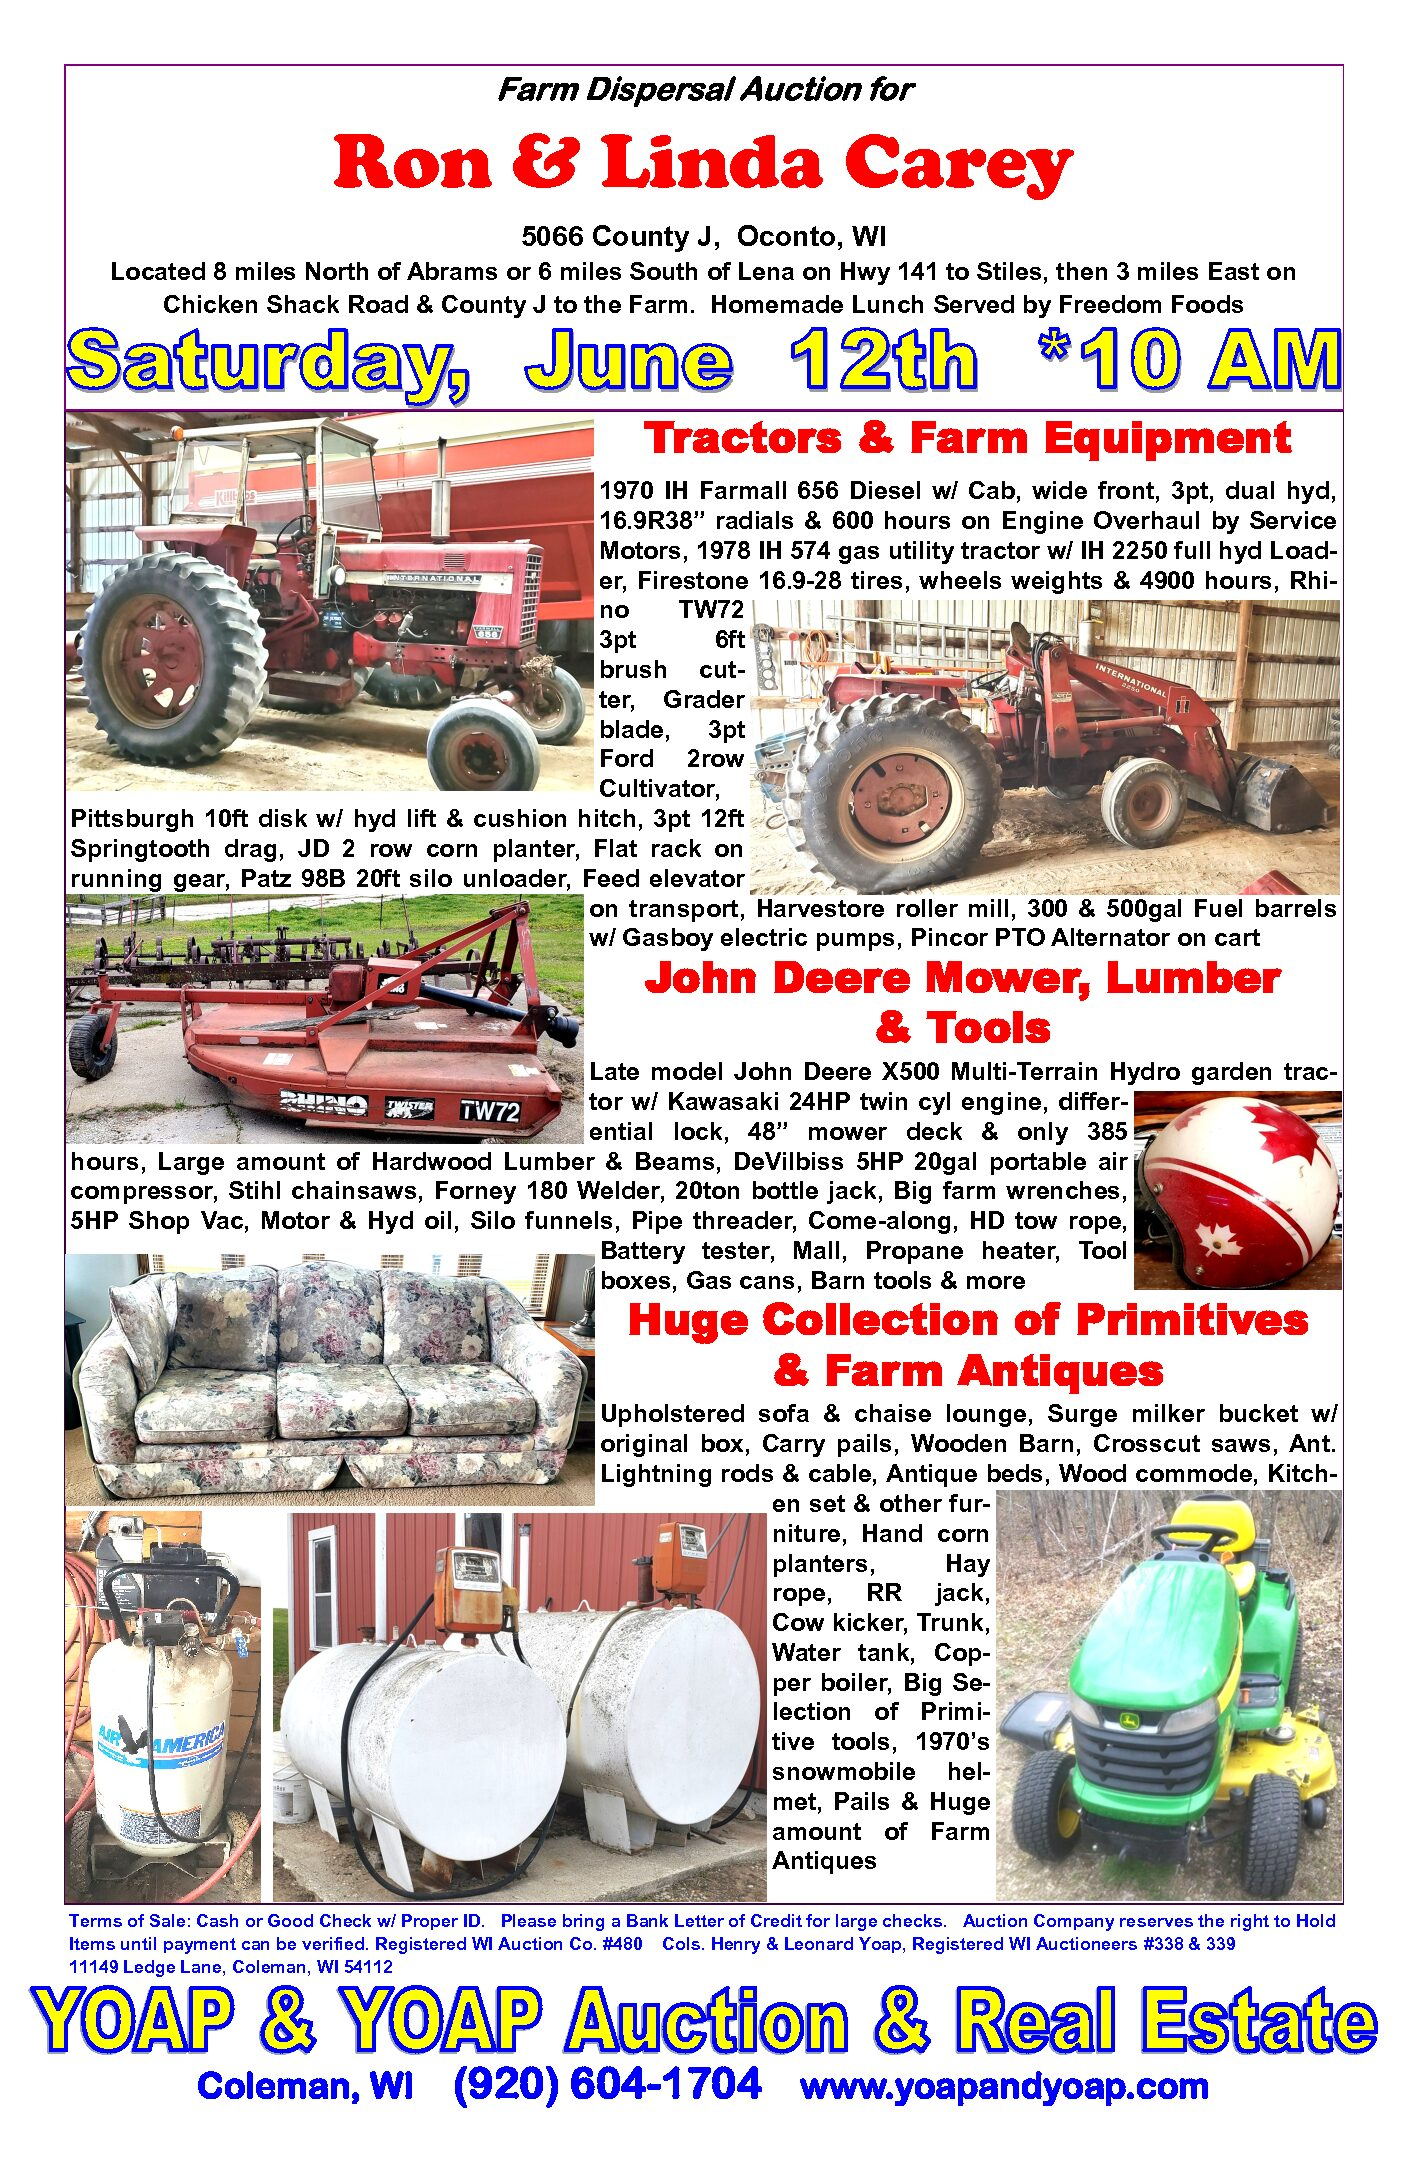 Don't Miss this auction